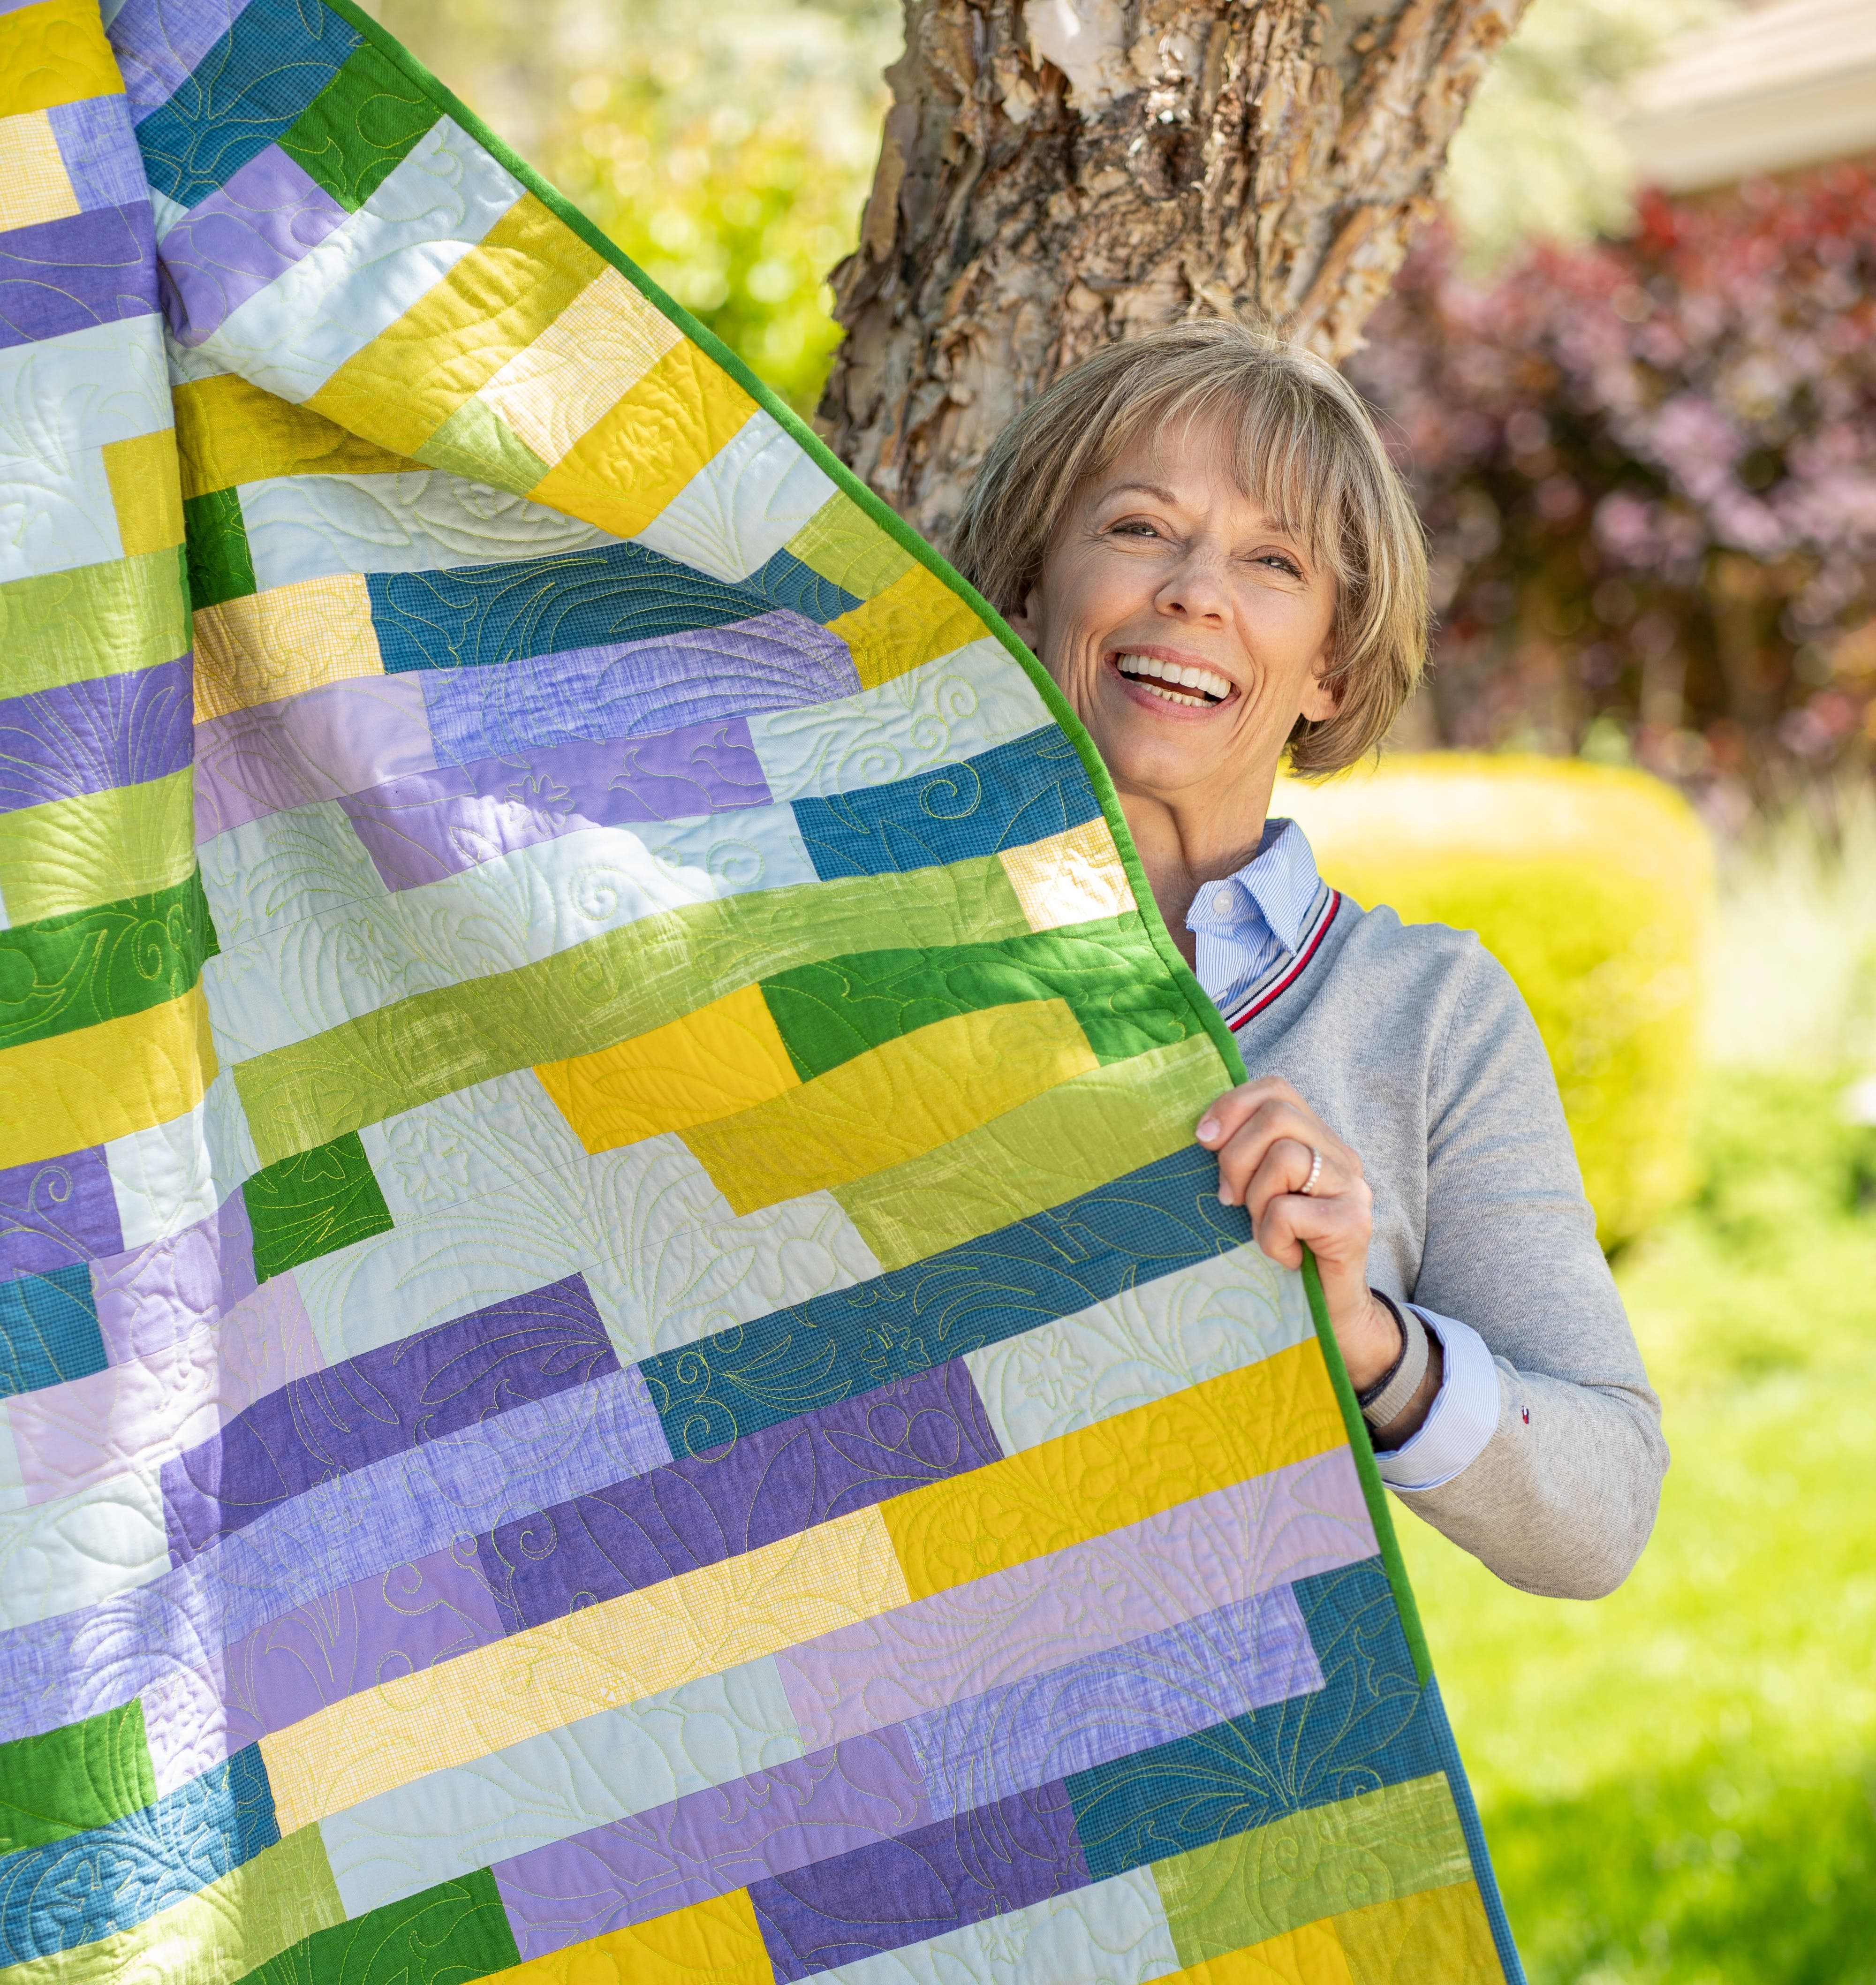 Jenny Lyon smiling and holding a free motion quilted quilt in green, blue, purple and yellow